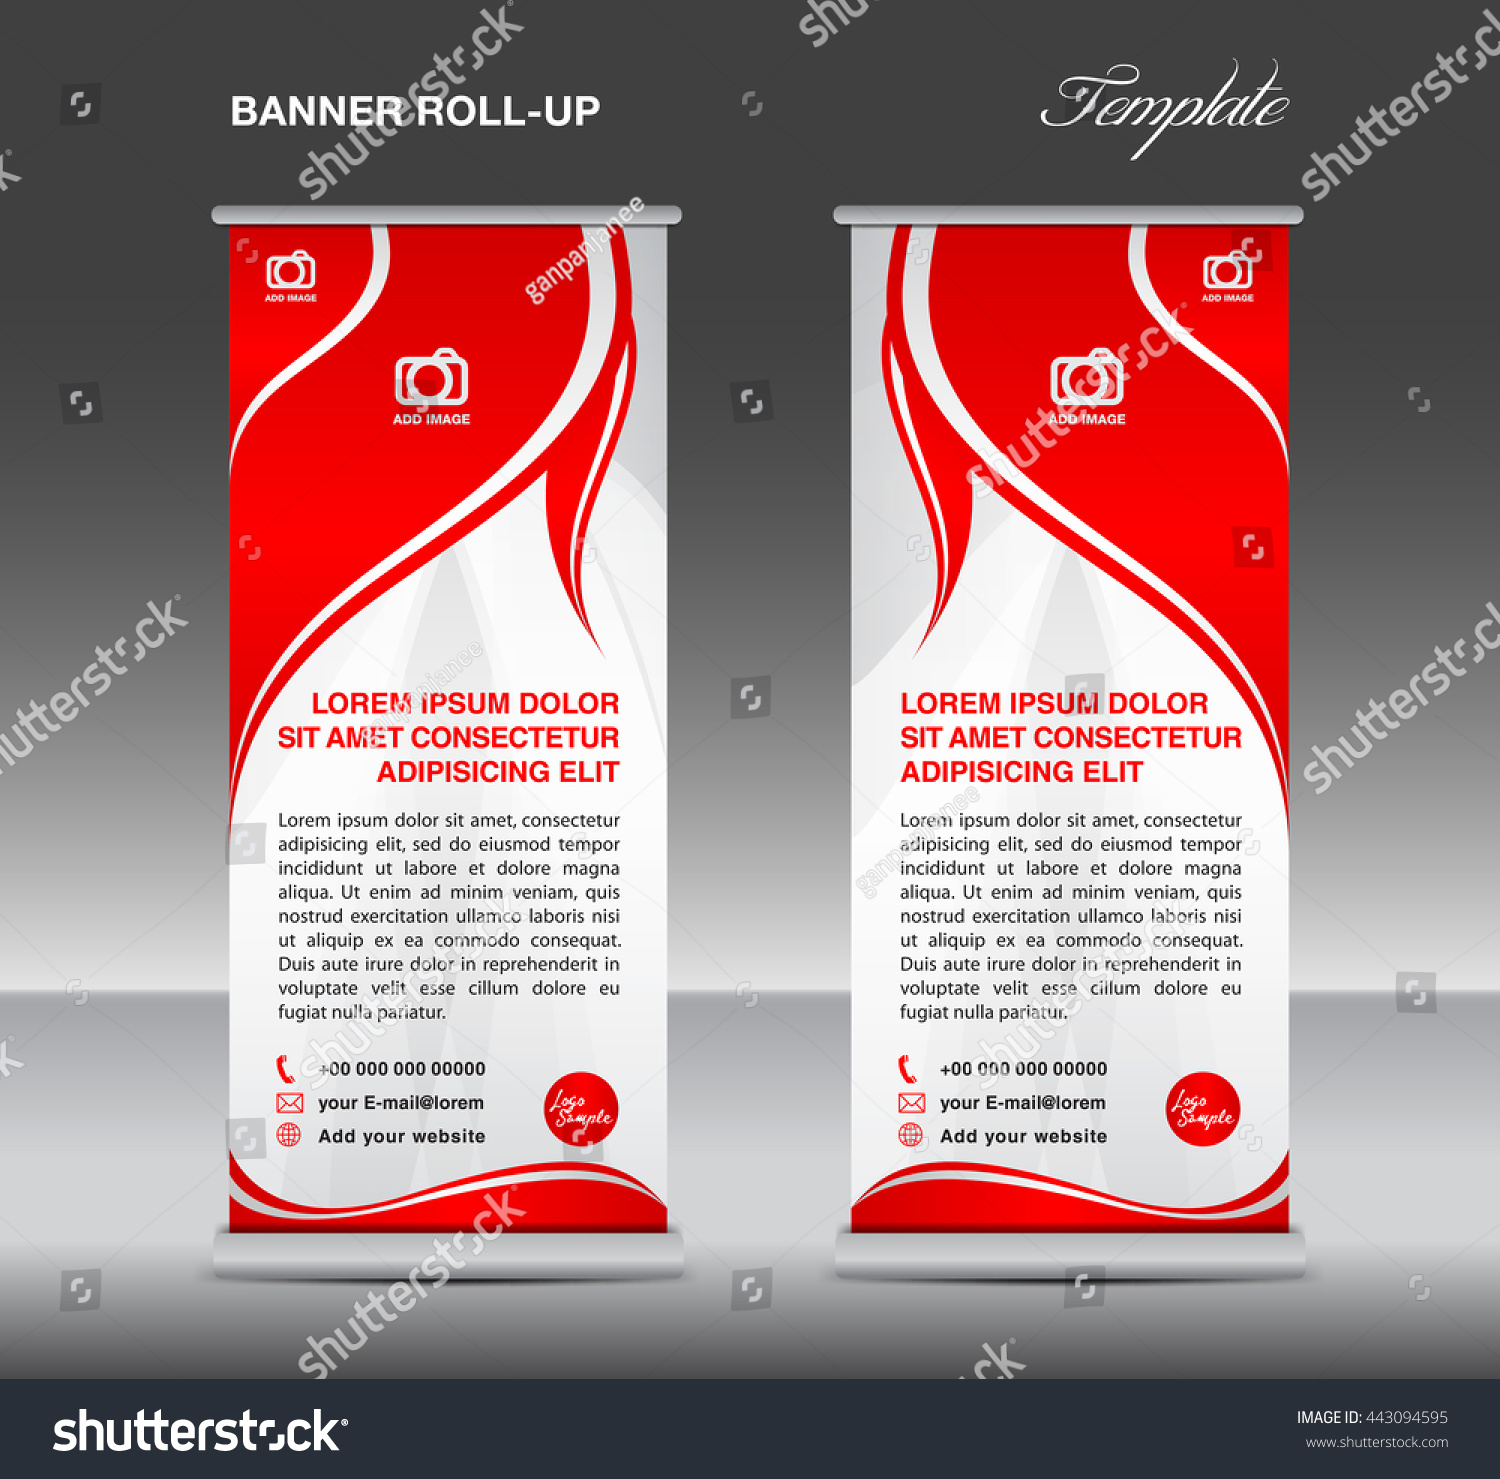 red white roll banner stand template stock vector  red and white roll up banner stand template flyer vector for business advertisement display